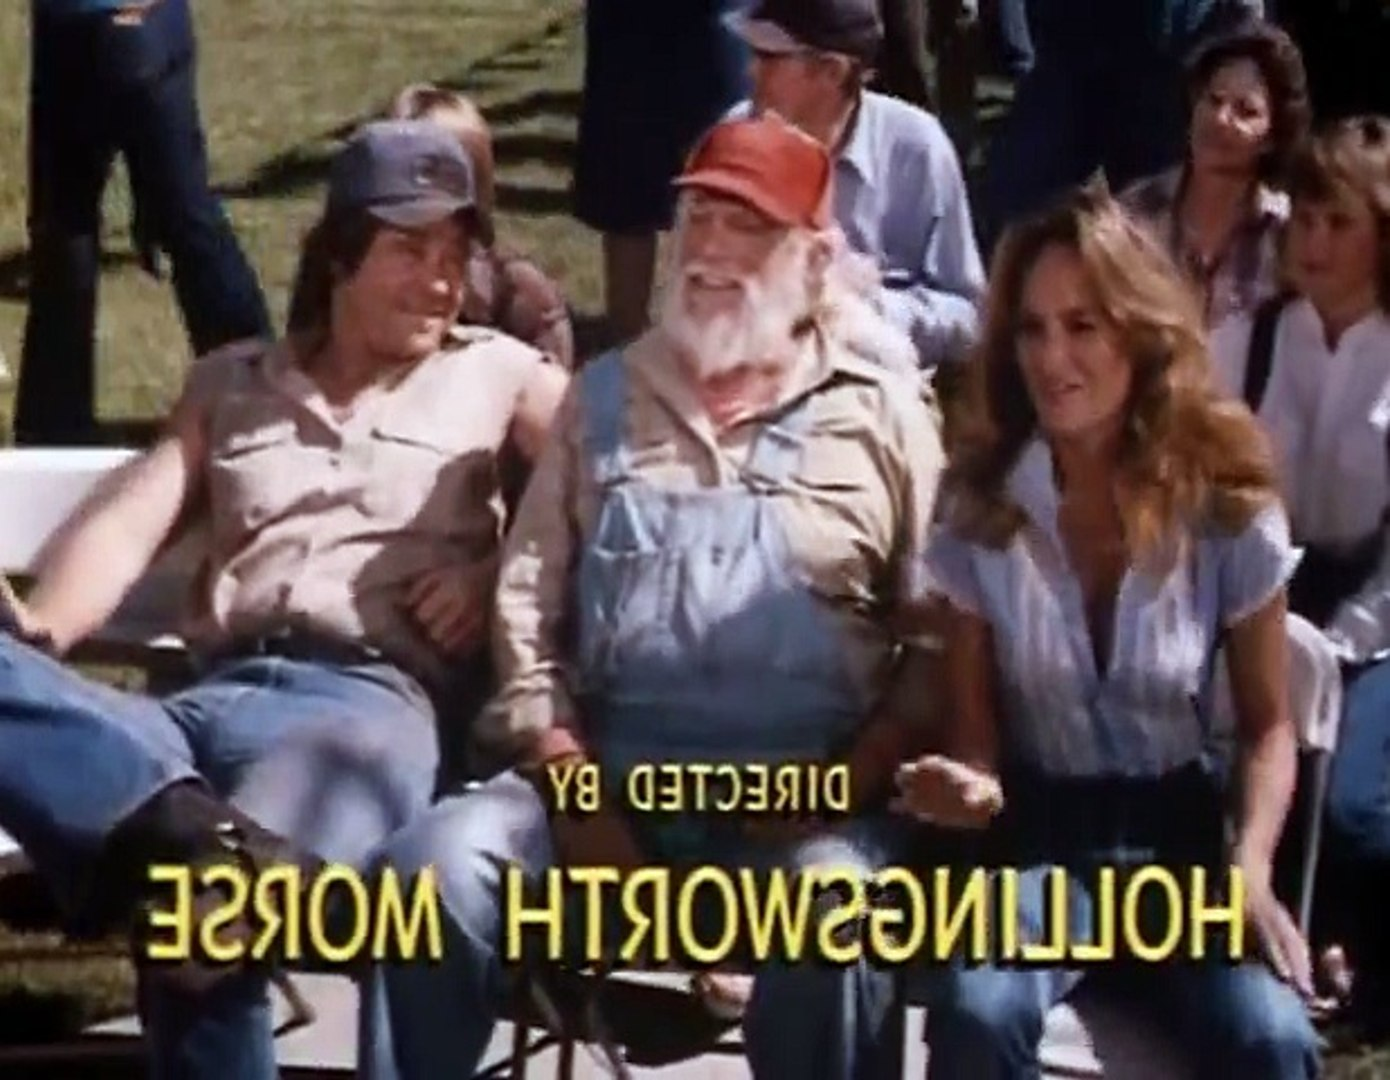 The Dukes of Hazzard S04 - Ep15 The Sound of Music - Hazzard Style HD Watch